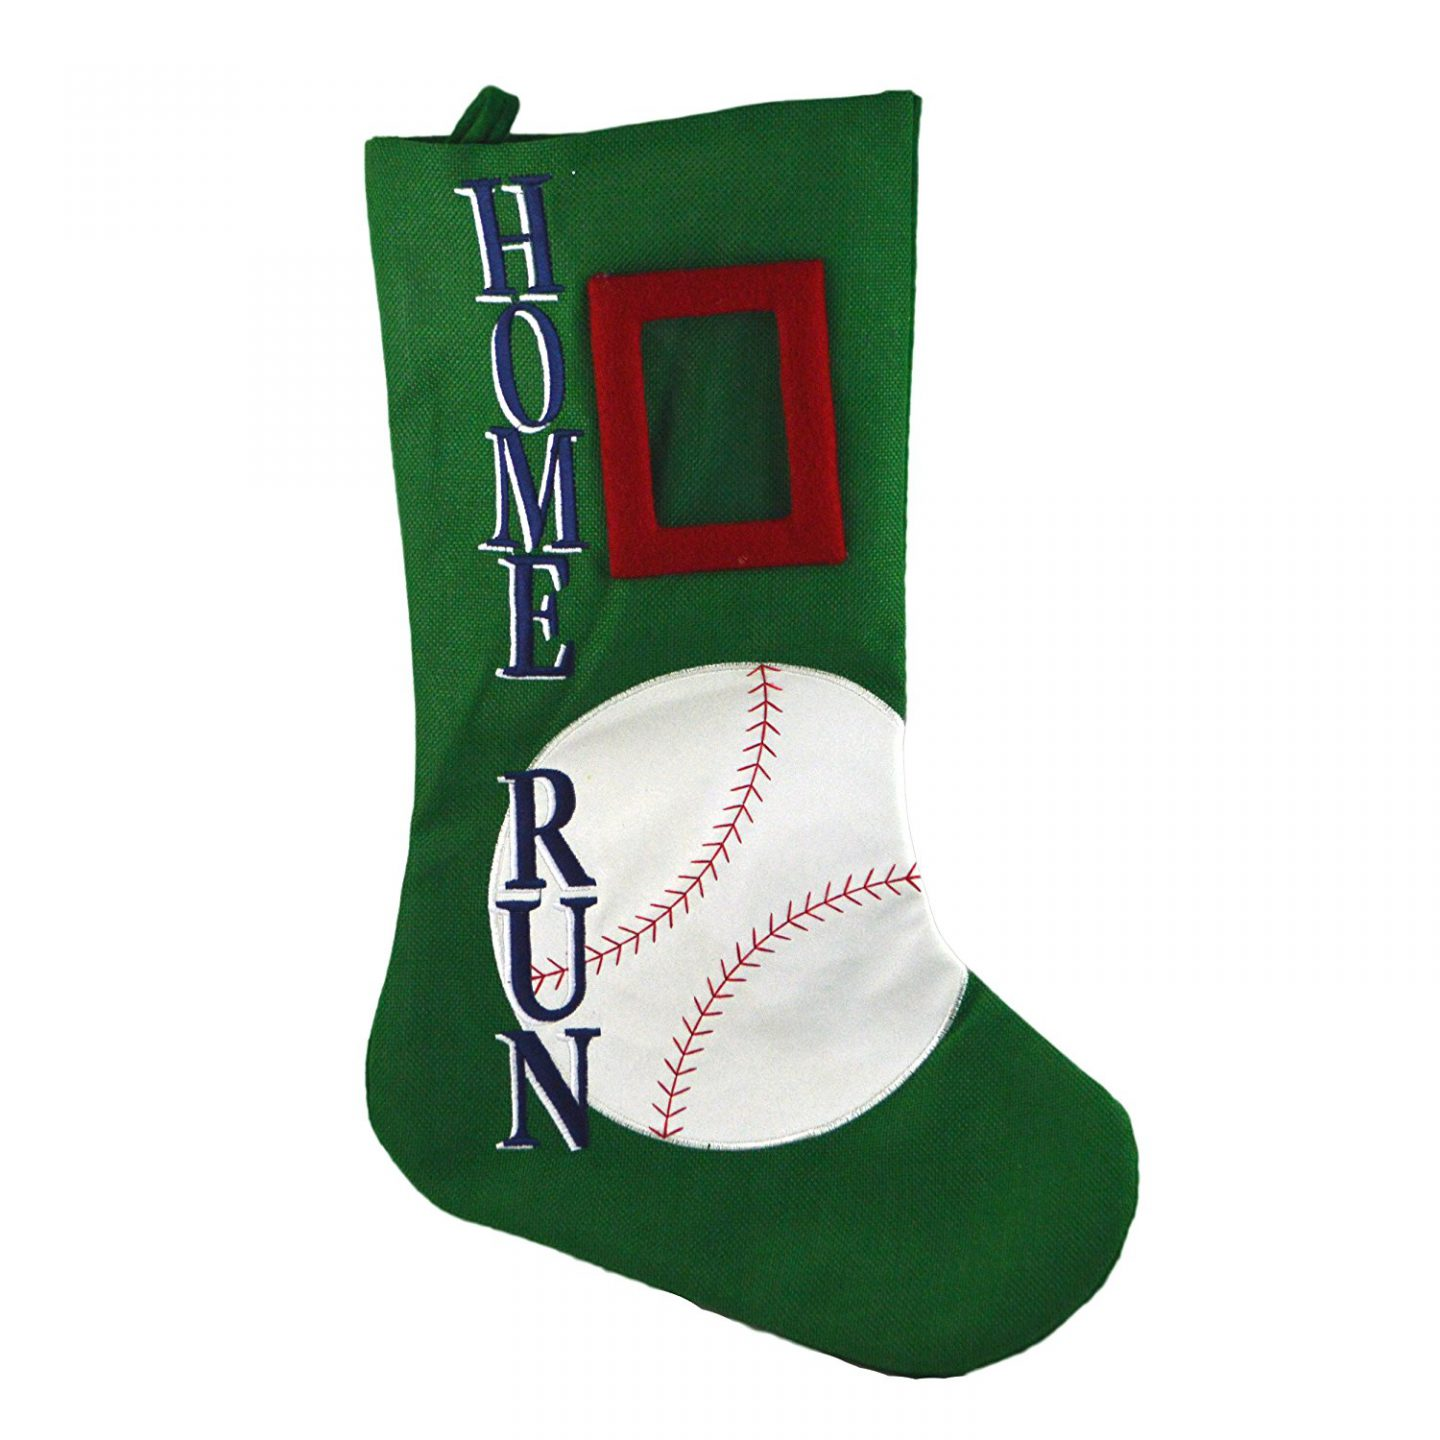 Baseball and Softball Stocking Stuffers